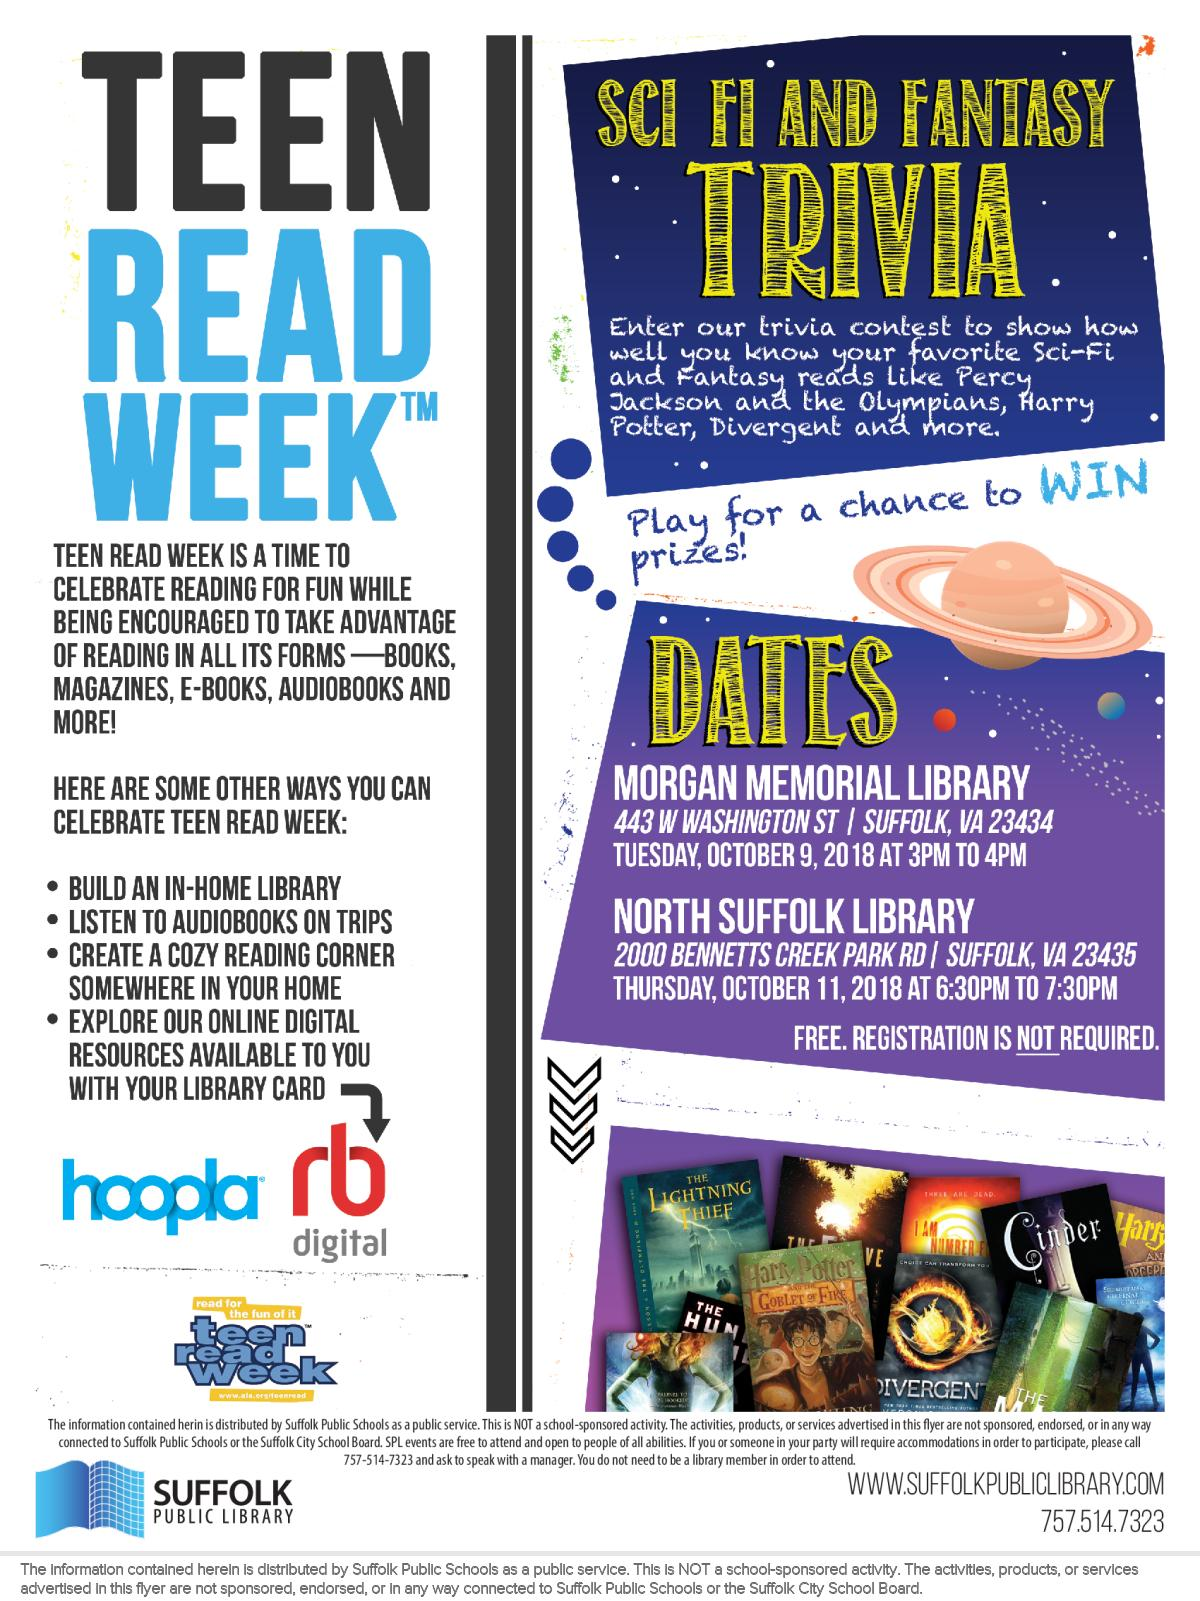 Image of a flyer titled Teen Read Week Sci-Fi and Fantasy Trivia